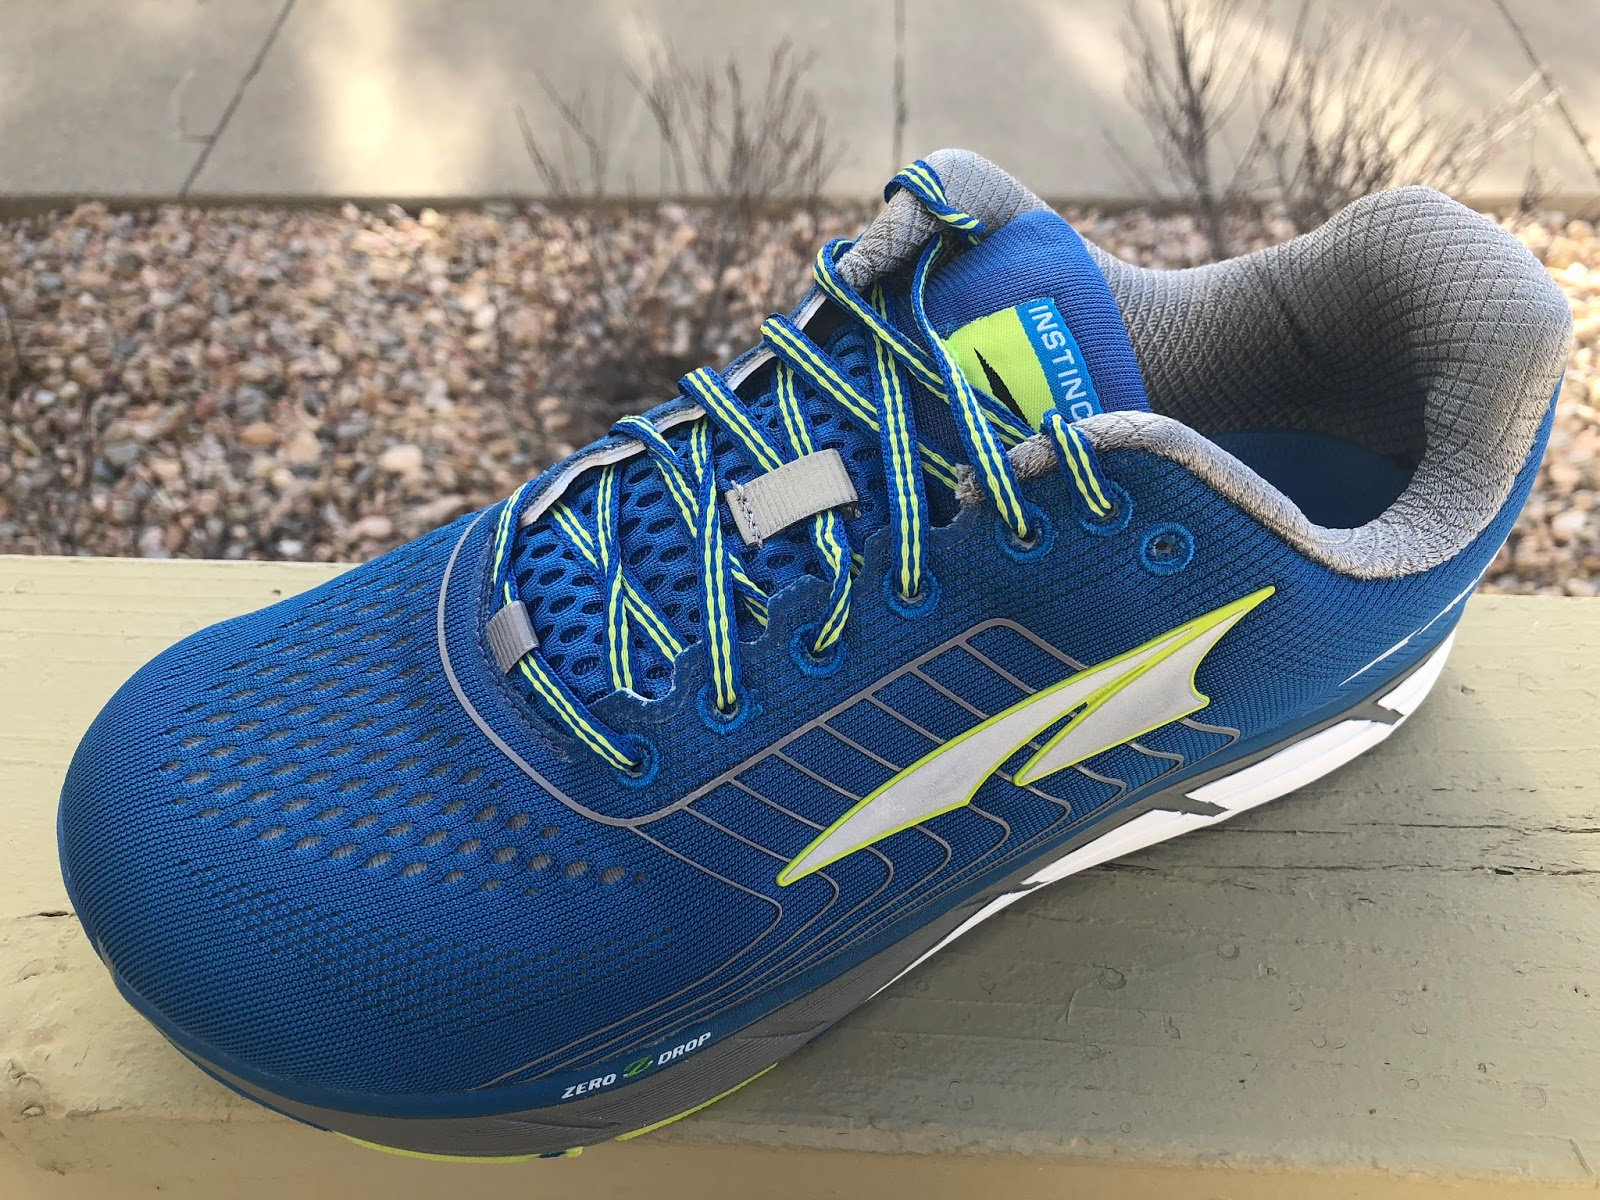 Altra FootwearIntuition 4.5